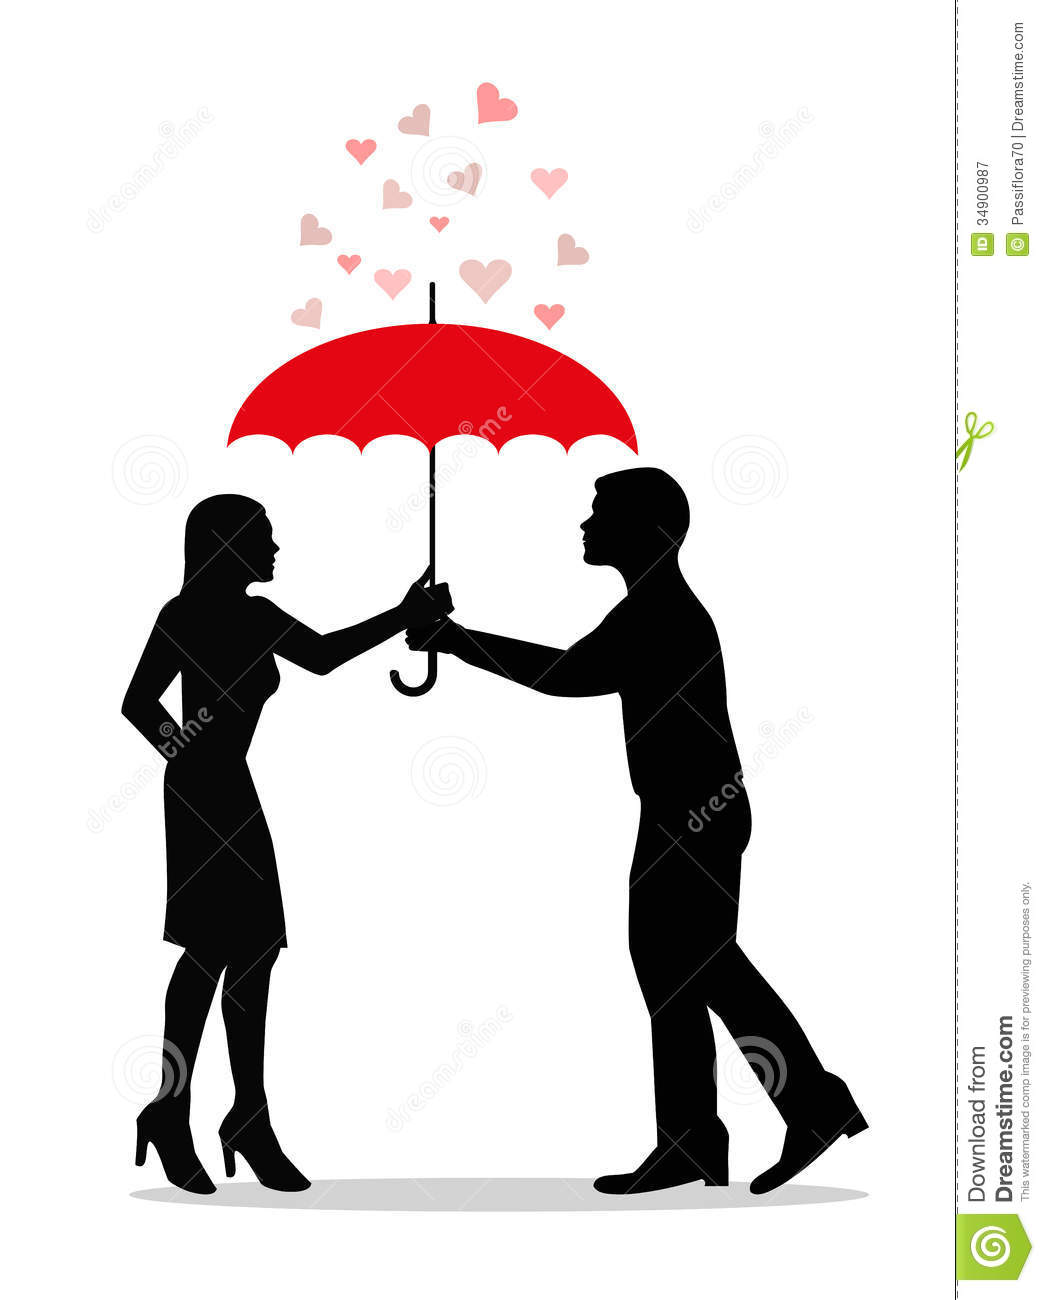 Love Under Umbrella Royalty Free Stock Photography